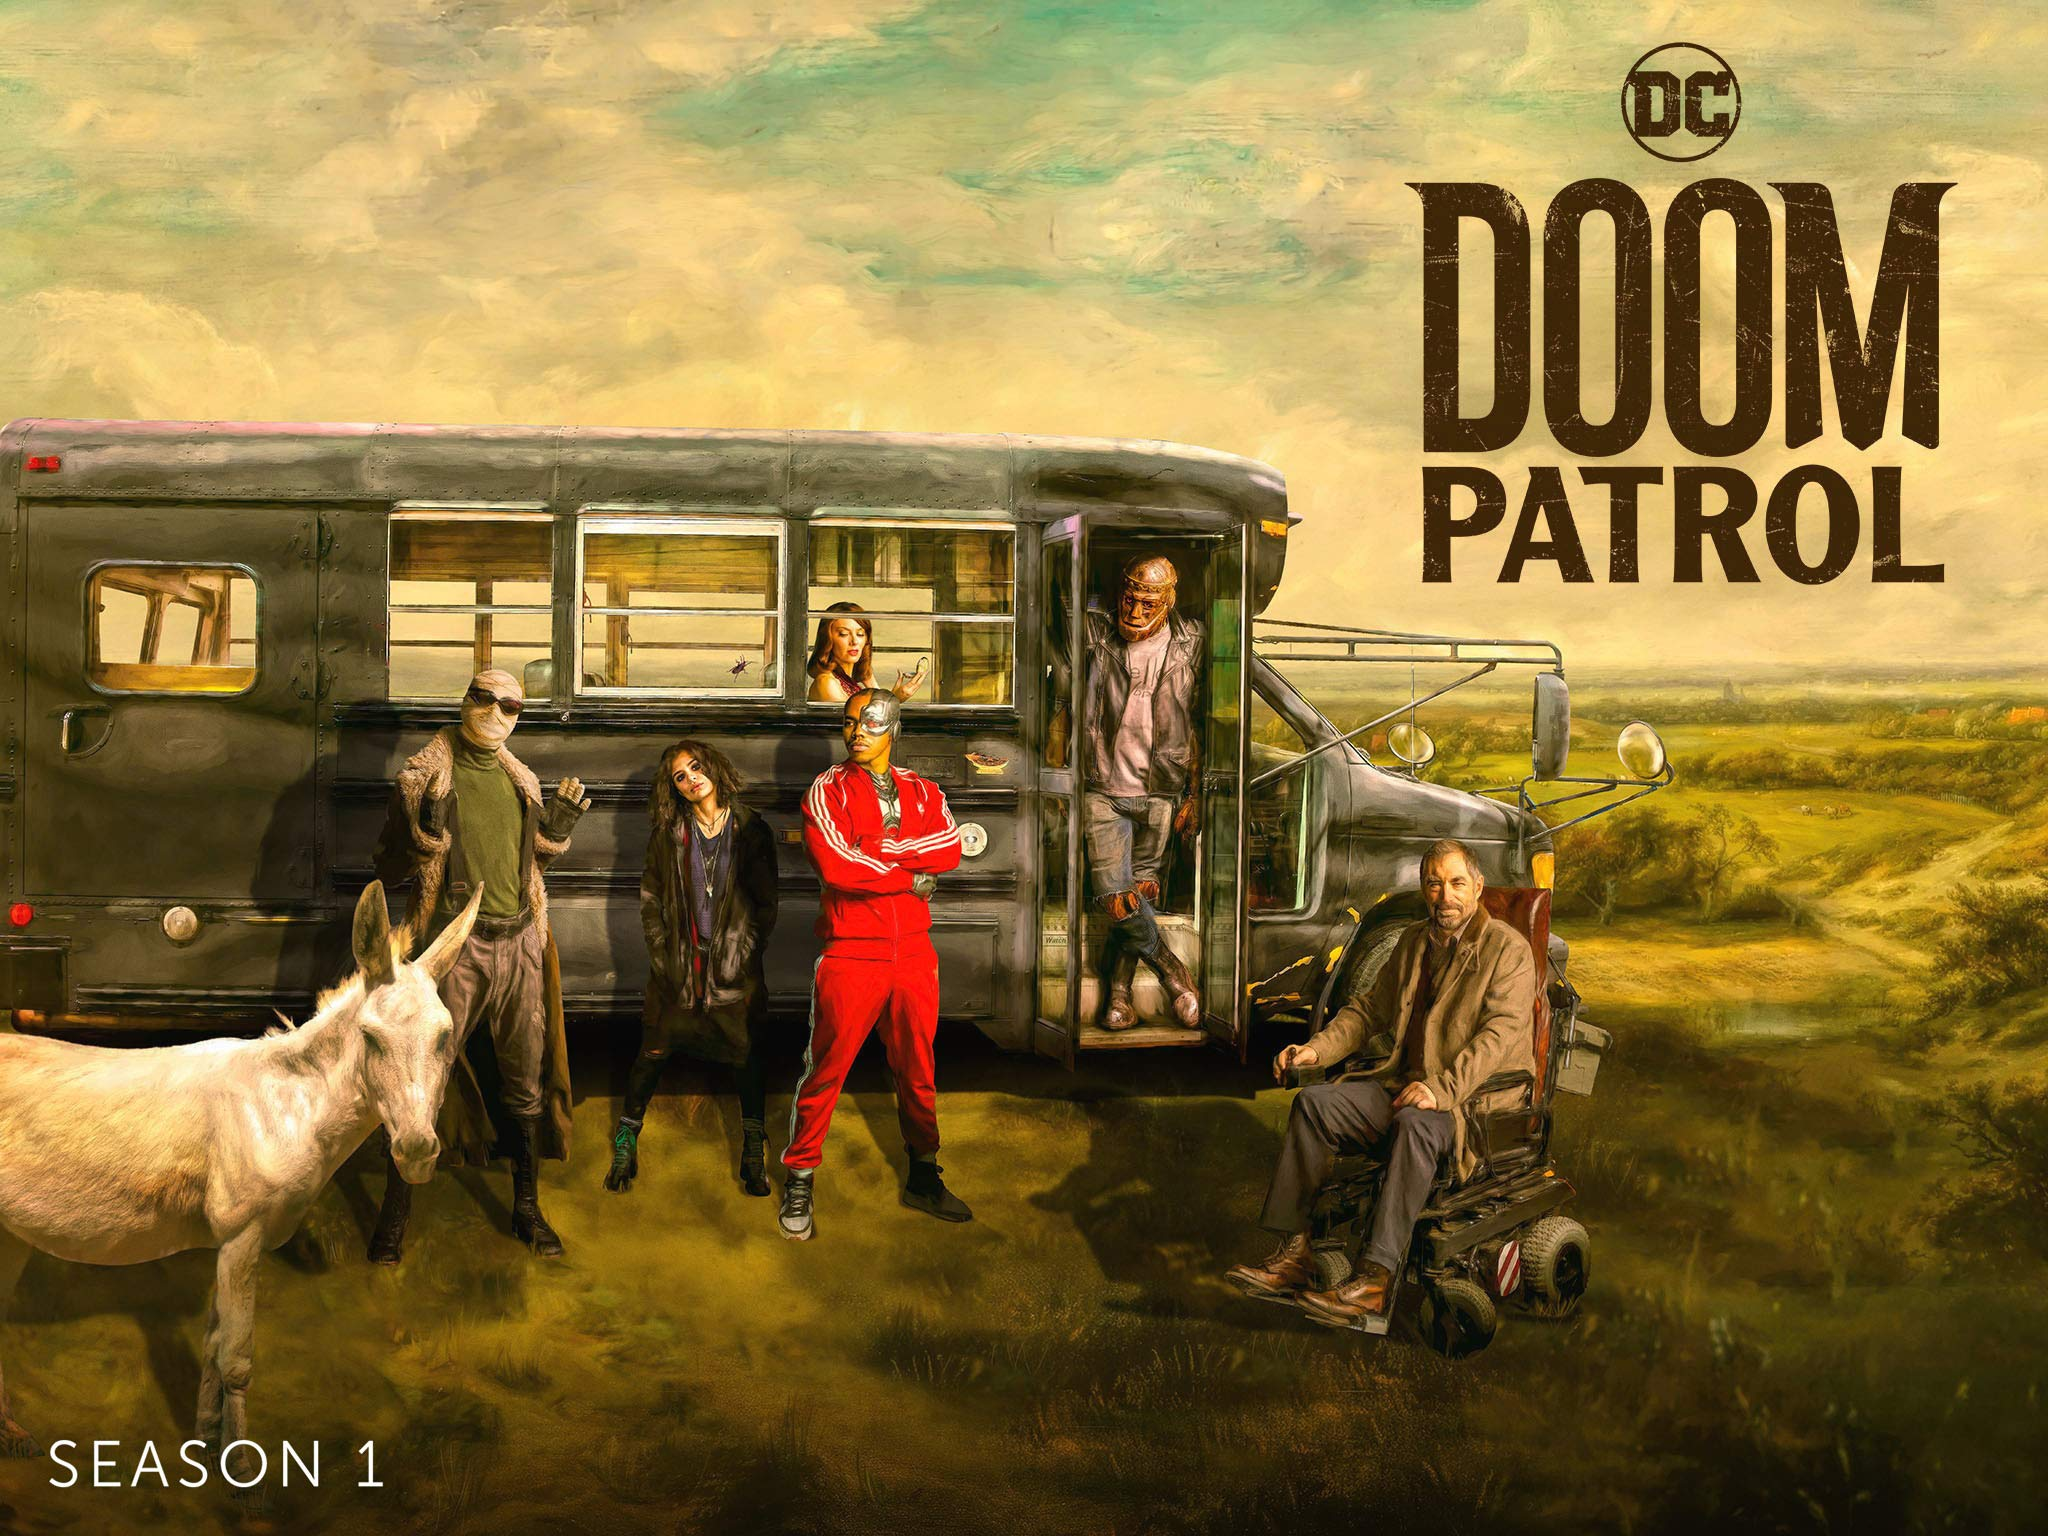 Starzplay Tv Review Doom Patrol Season 1 Vodzilla Co Where To Watch Online In Uk